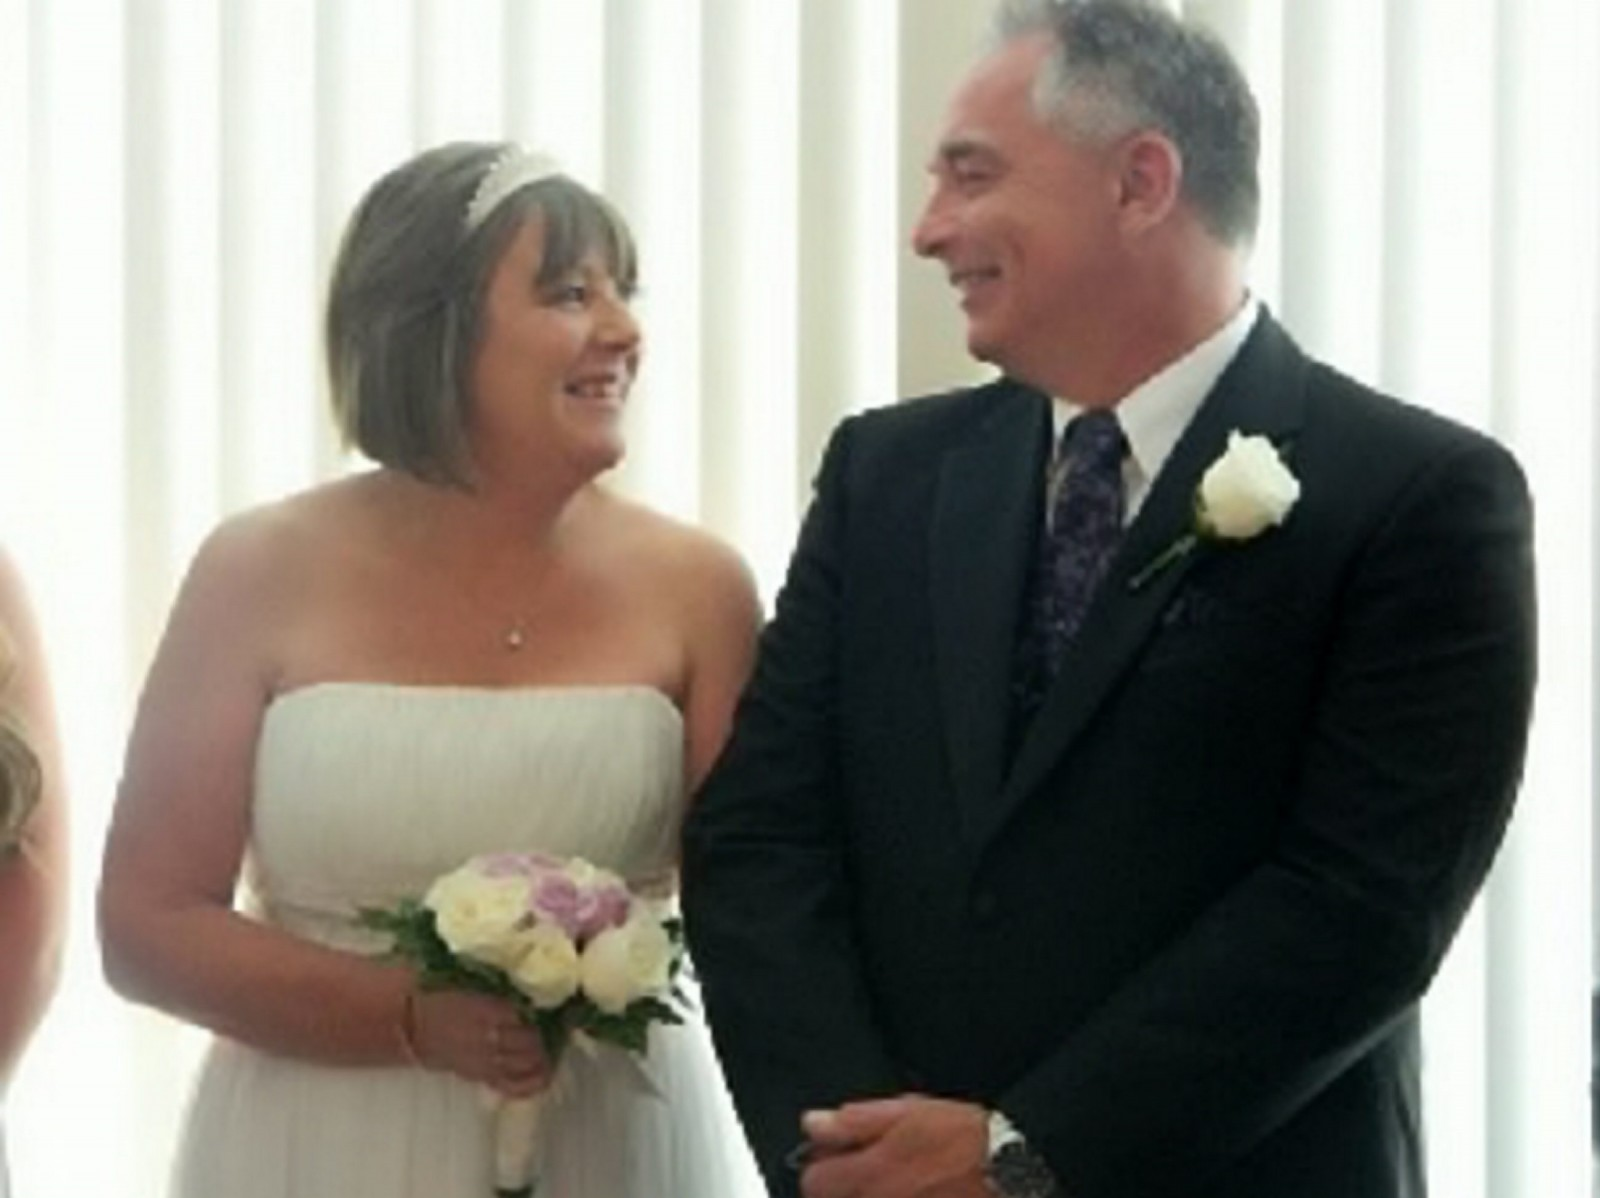 Collect picture of Ian and Carolyn on their wedding day in Adelaide, 29 December 2014. See SWNS story SWSWEET Childhood sweethearts reunited from across the globe - and finally tie the knot 35 years later. Soul mates Carolyn Cook, Nee Walker, 51 and her now husband Ian, 50, first met as teenagers in 1979. They were first loves and dated for about two years - before a devastating split when Ian's family decided to emigrate to Australia. The pair lost touch until a surprise online reunion in 2010. Carolyn left behind her life in England to rediscover her lost love and, 35 years after they met, the couple married.